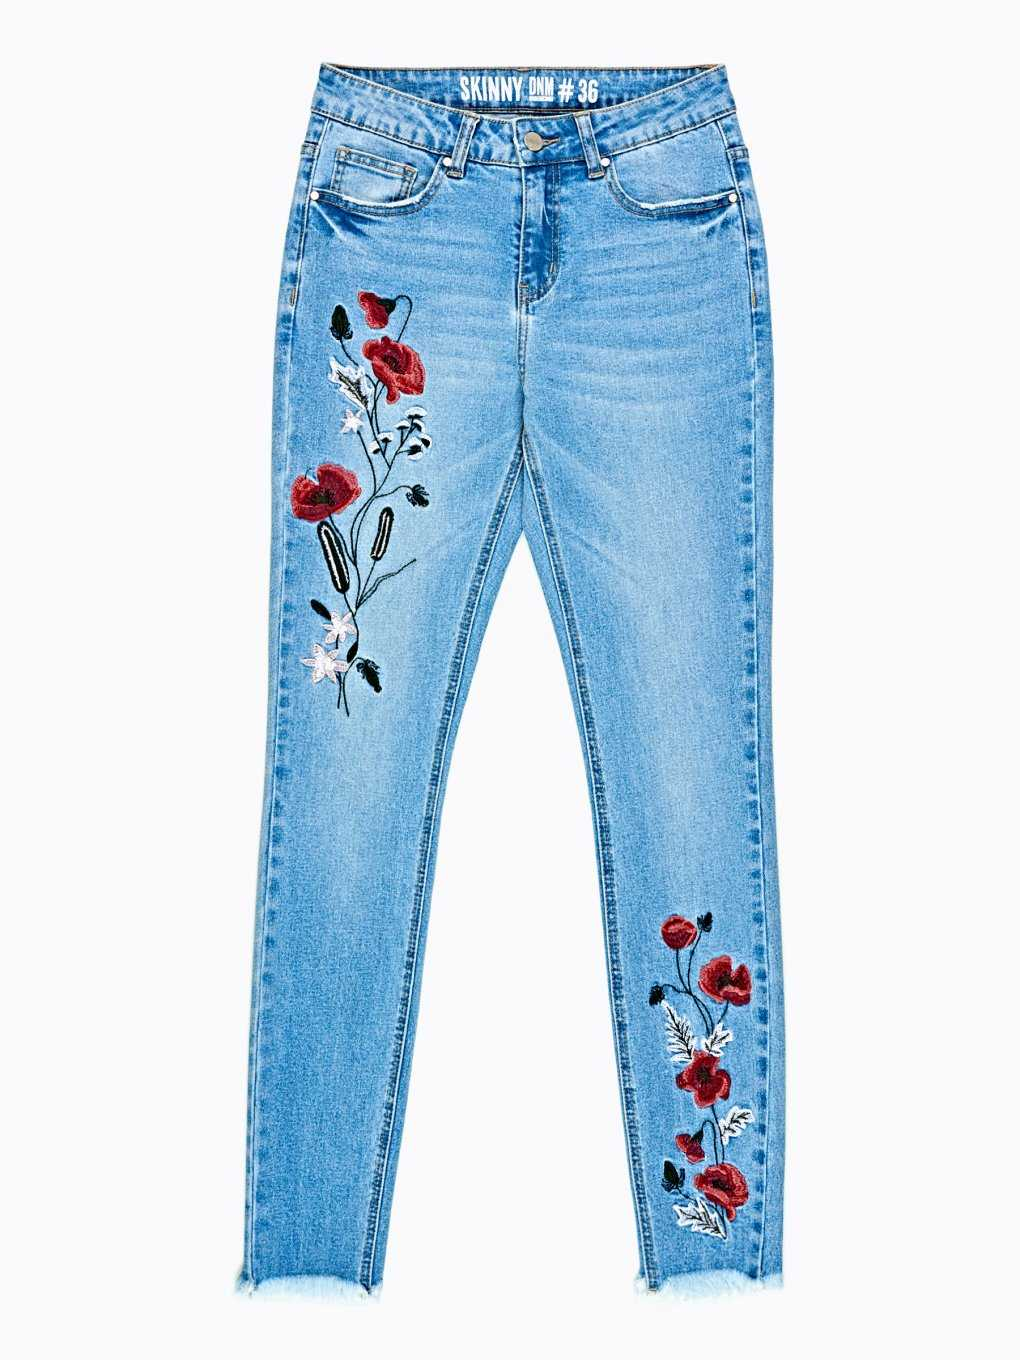 Skinny jeans with floral embroidery